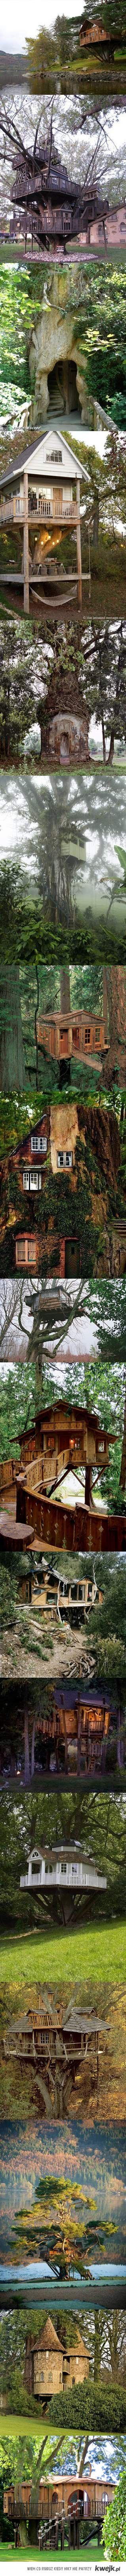 Amazing Tree Houses. So going to build an awesome tree house when